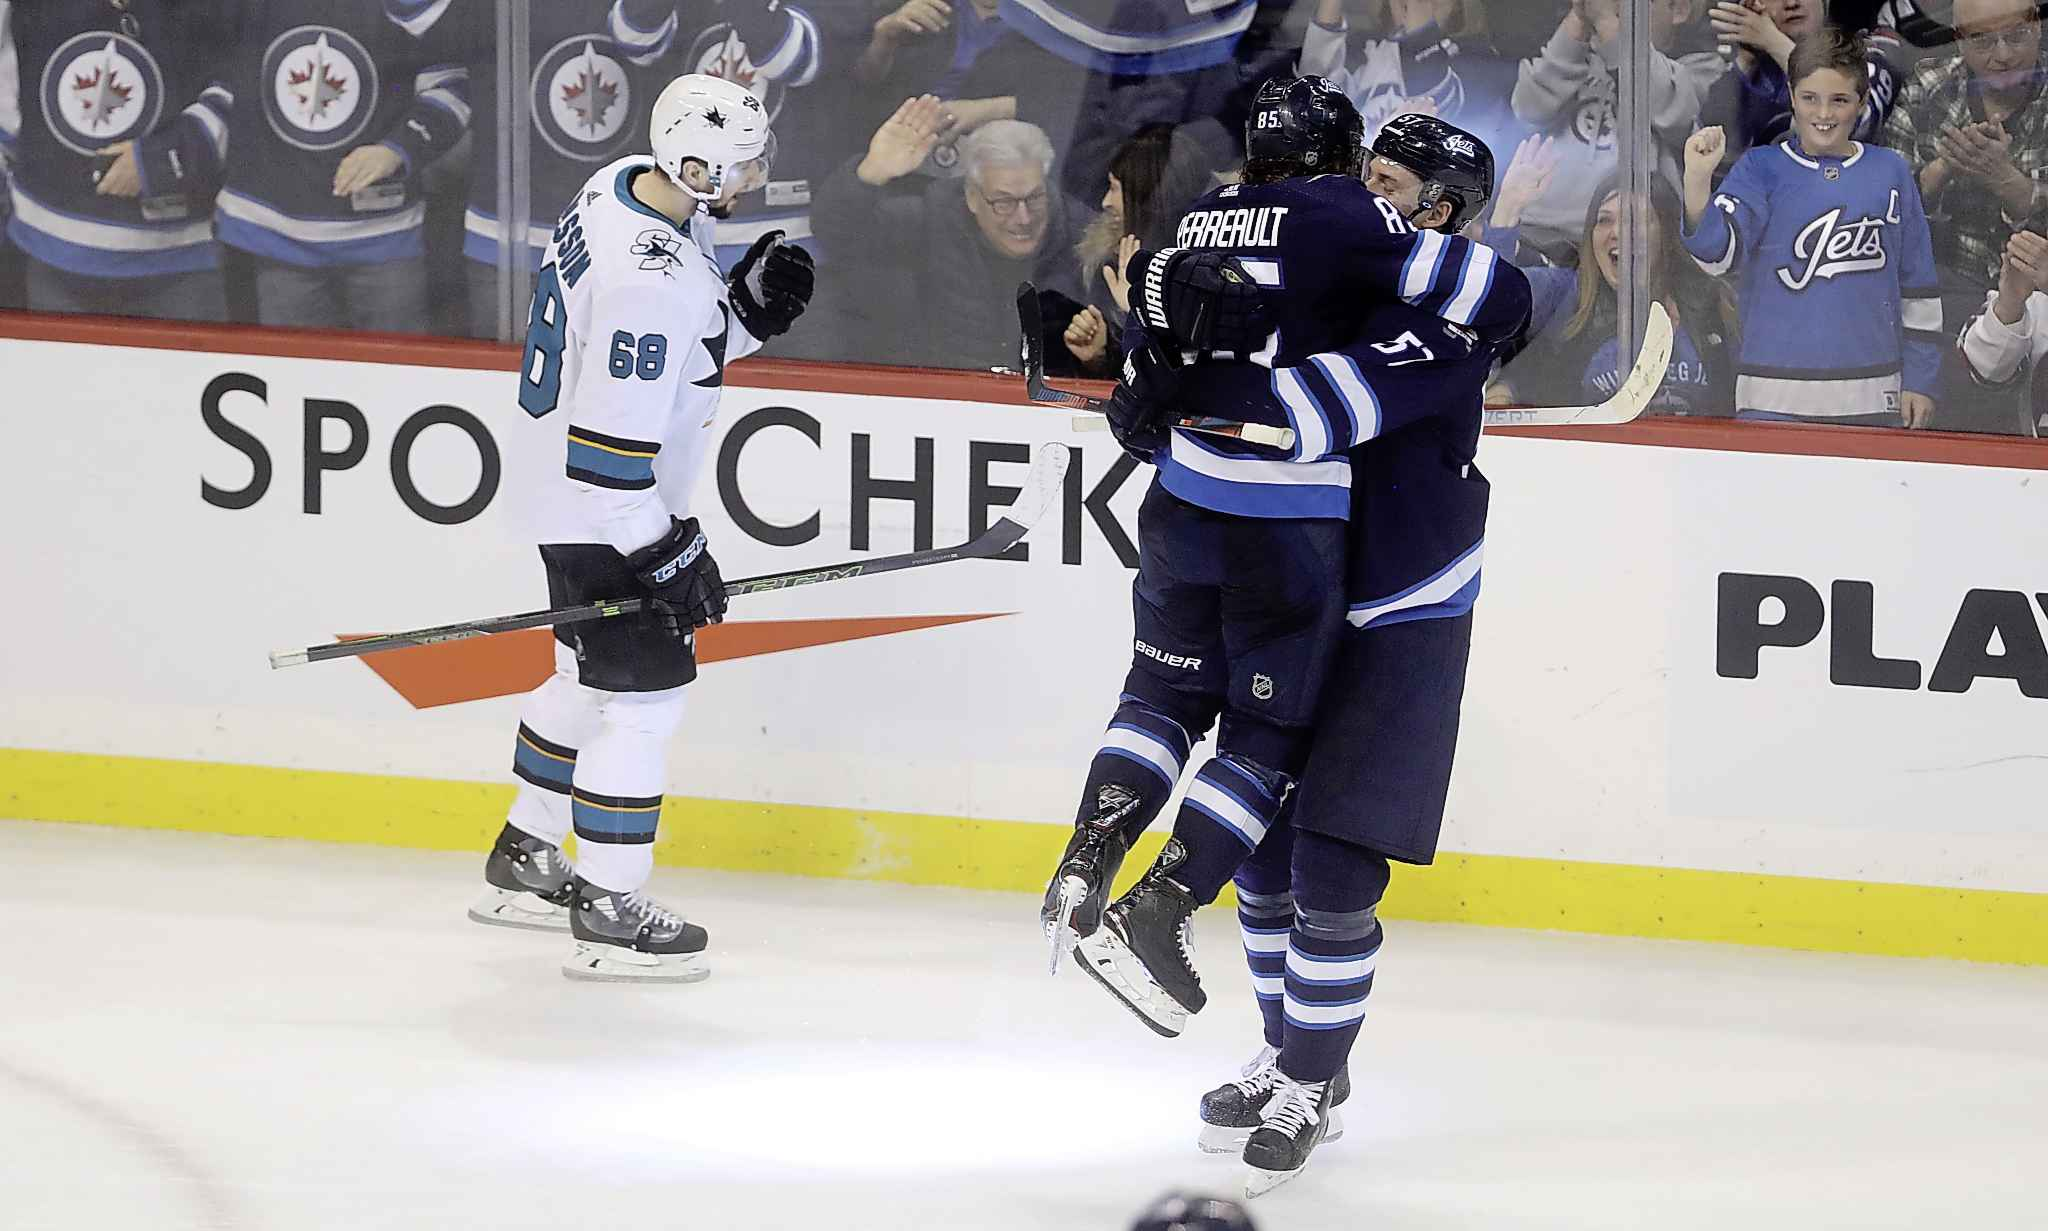 Winnipeg Jets' Mathieu Perreault (85) and Tyler Myers (57) celebrate after Perreault scored to tie the game against the San Jose Sharks during third period. TREVOR HAGAN / THE CANADIAN PRESS